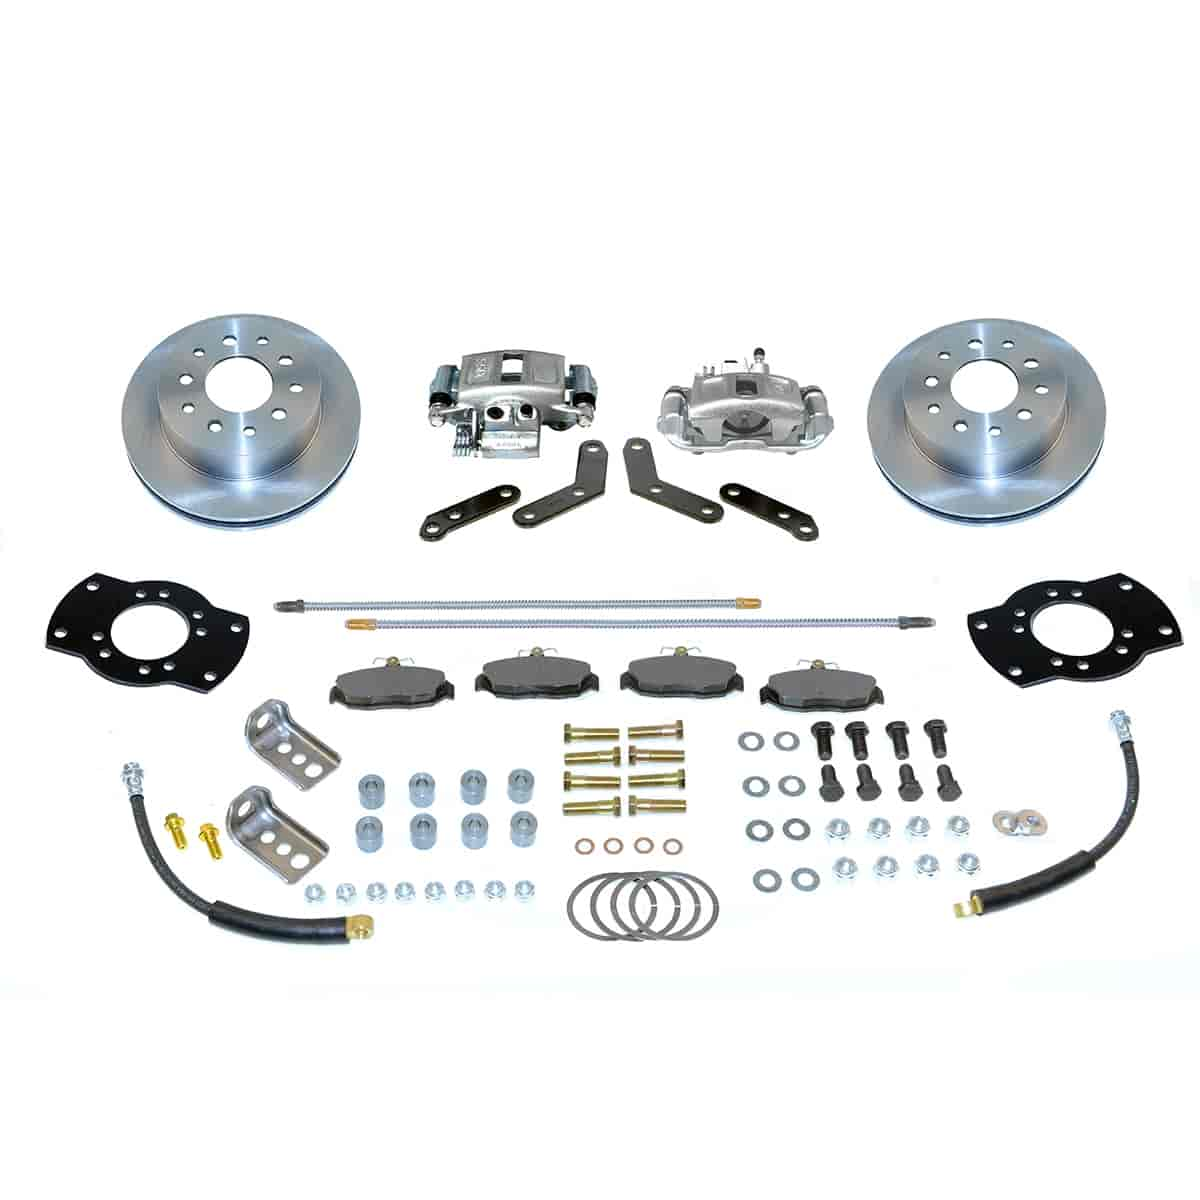 SSBC A125-1 - Stainless Steel Brakes Single Piston Rear Disc Brake Conversion Kit